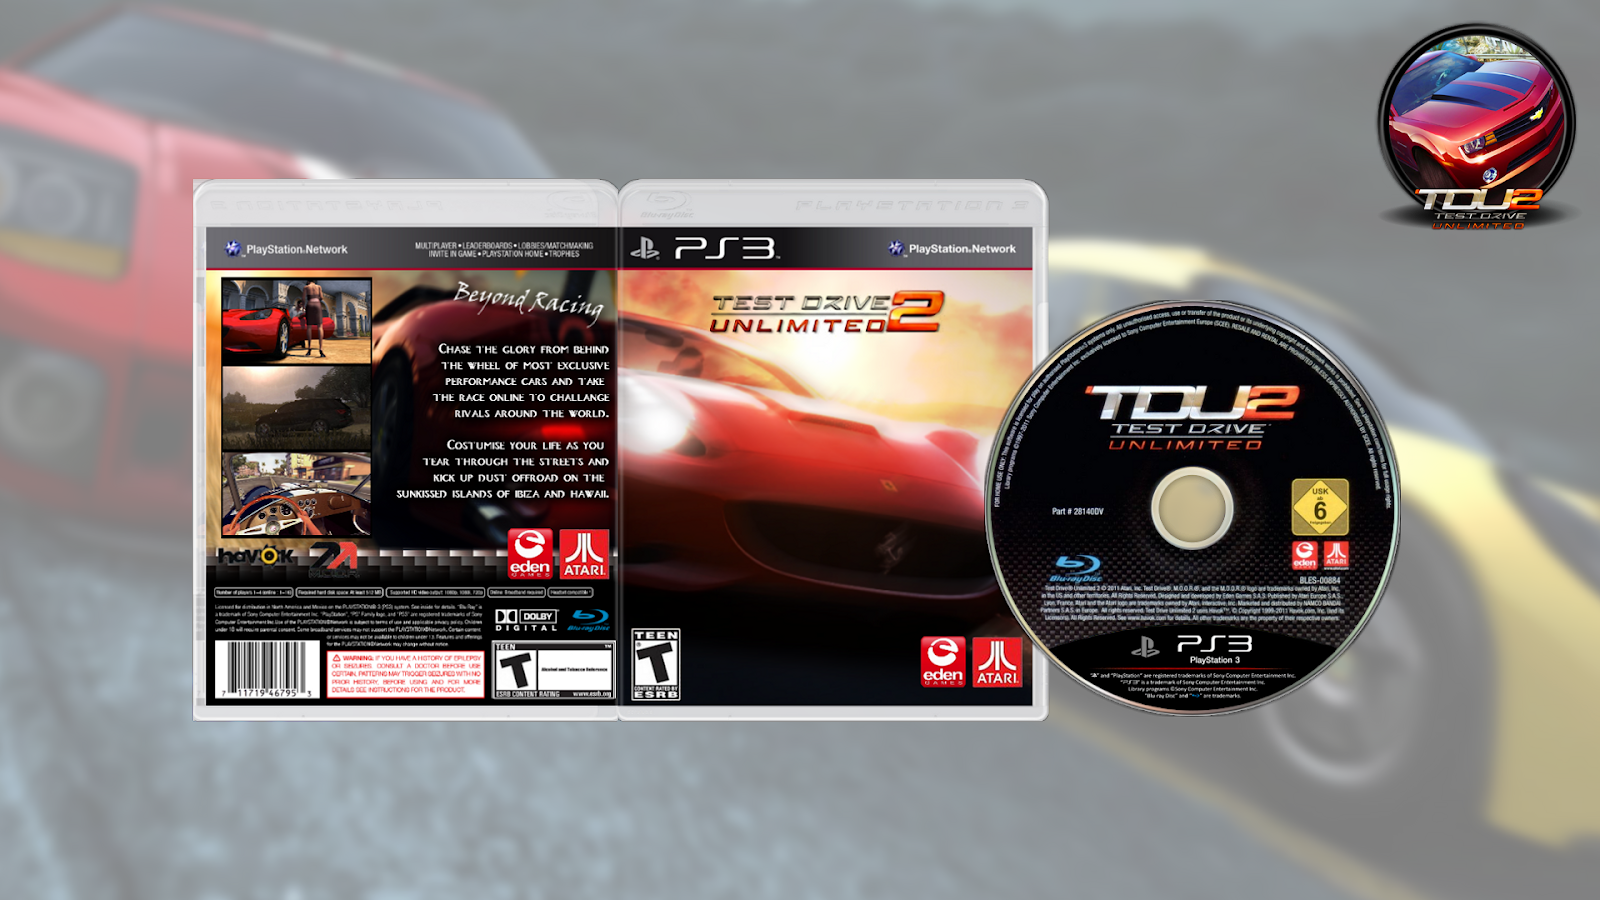 test drive unlimited 2 ps3 torrent download